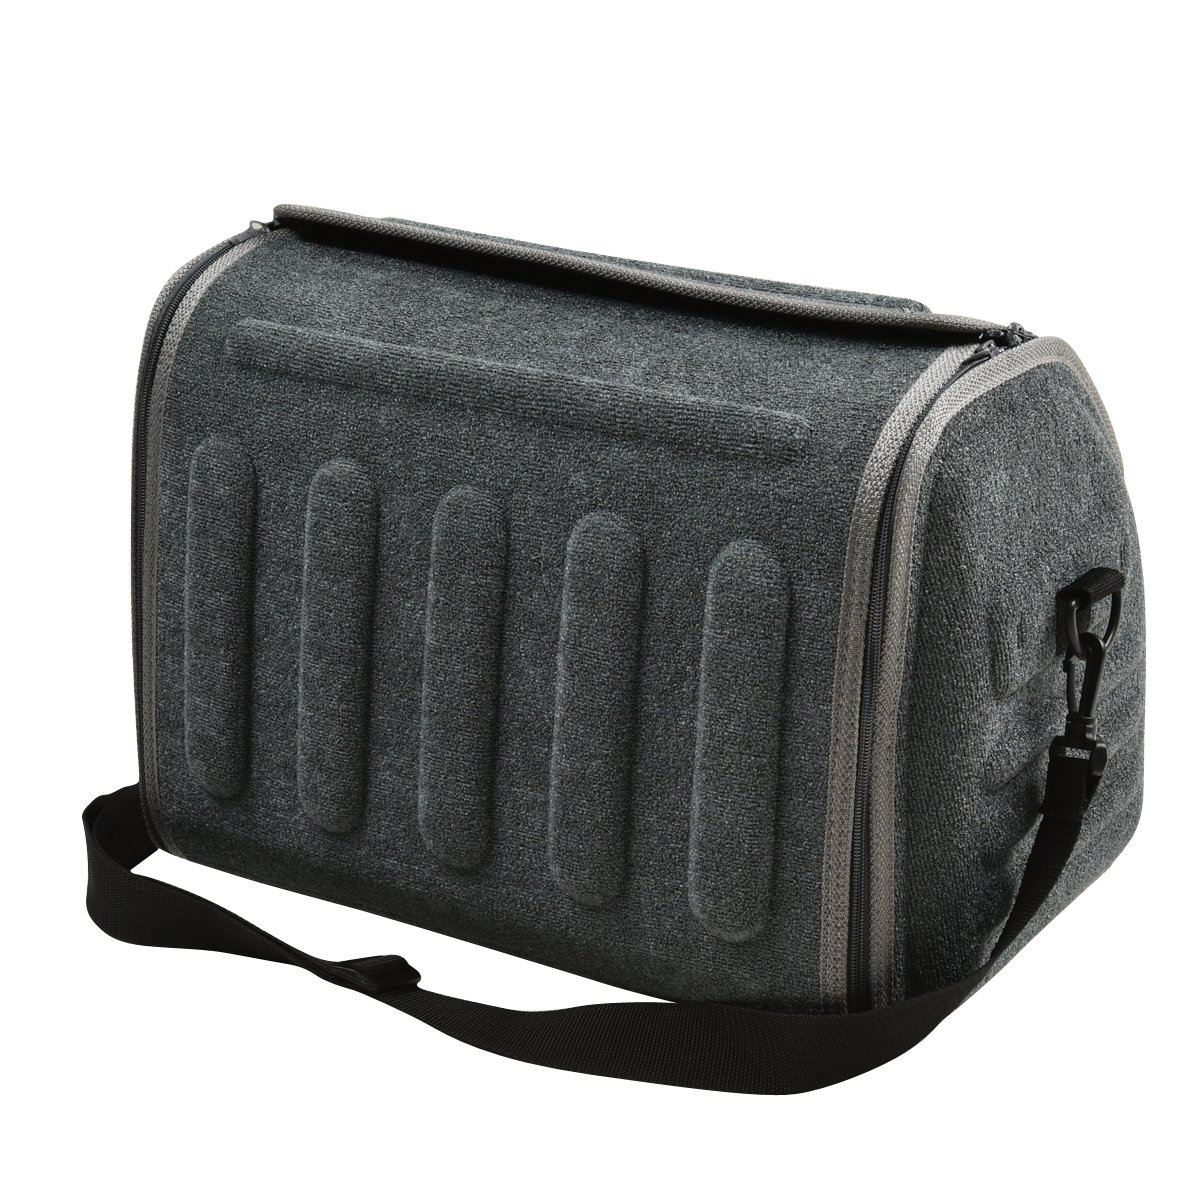 Durable Collapsible Cargo Storage,Great for Car Dark Gray CAR PASS Universal Waterproof Foldable Car Trunk Organizers Home SUV Minivan Jeep Truck